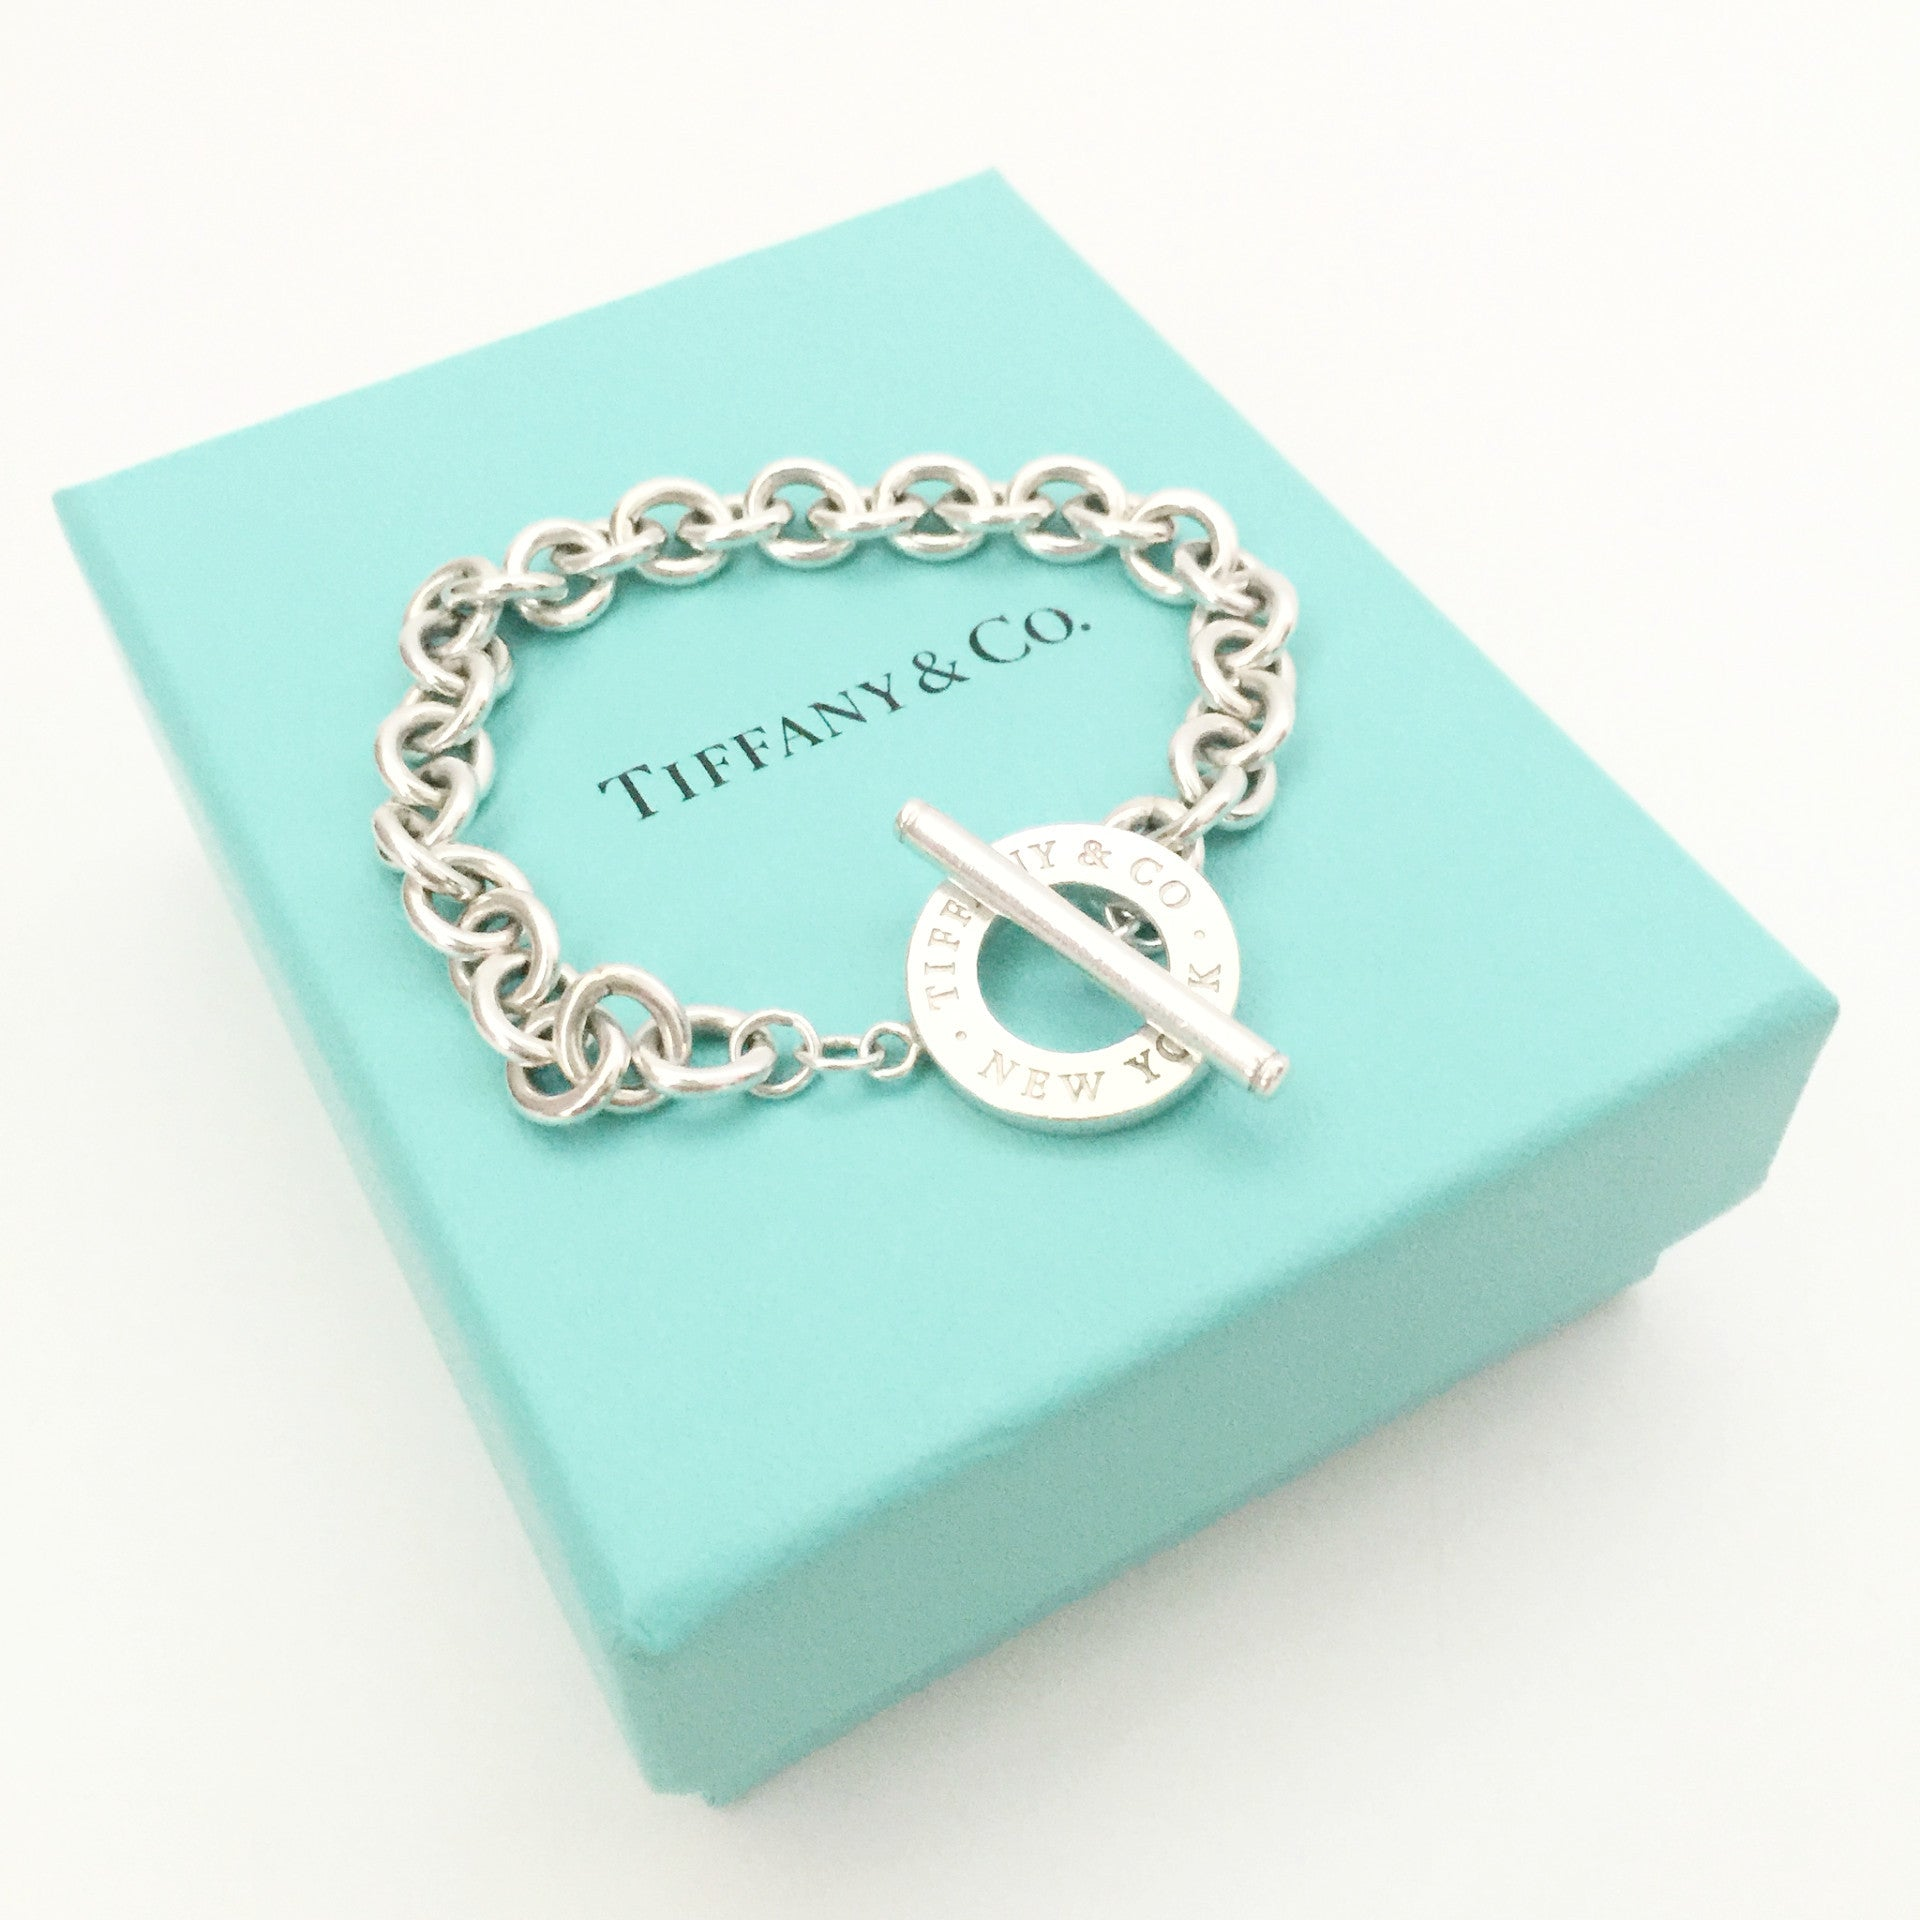 Authentic TIFFANY & CO Toggle Bracelet